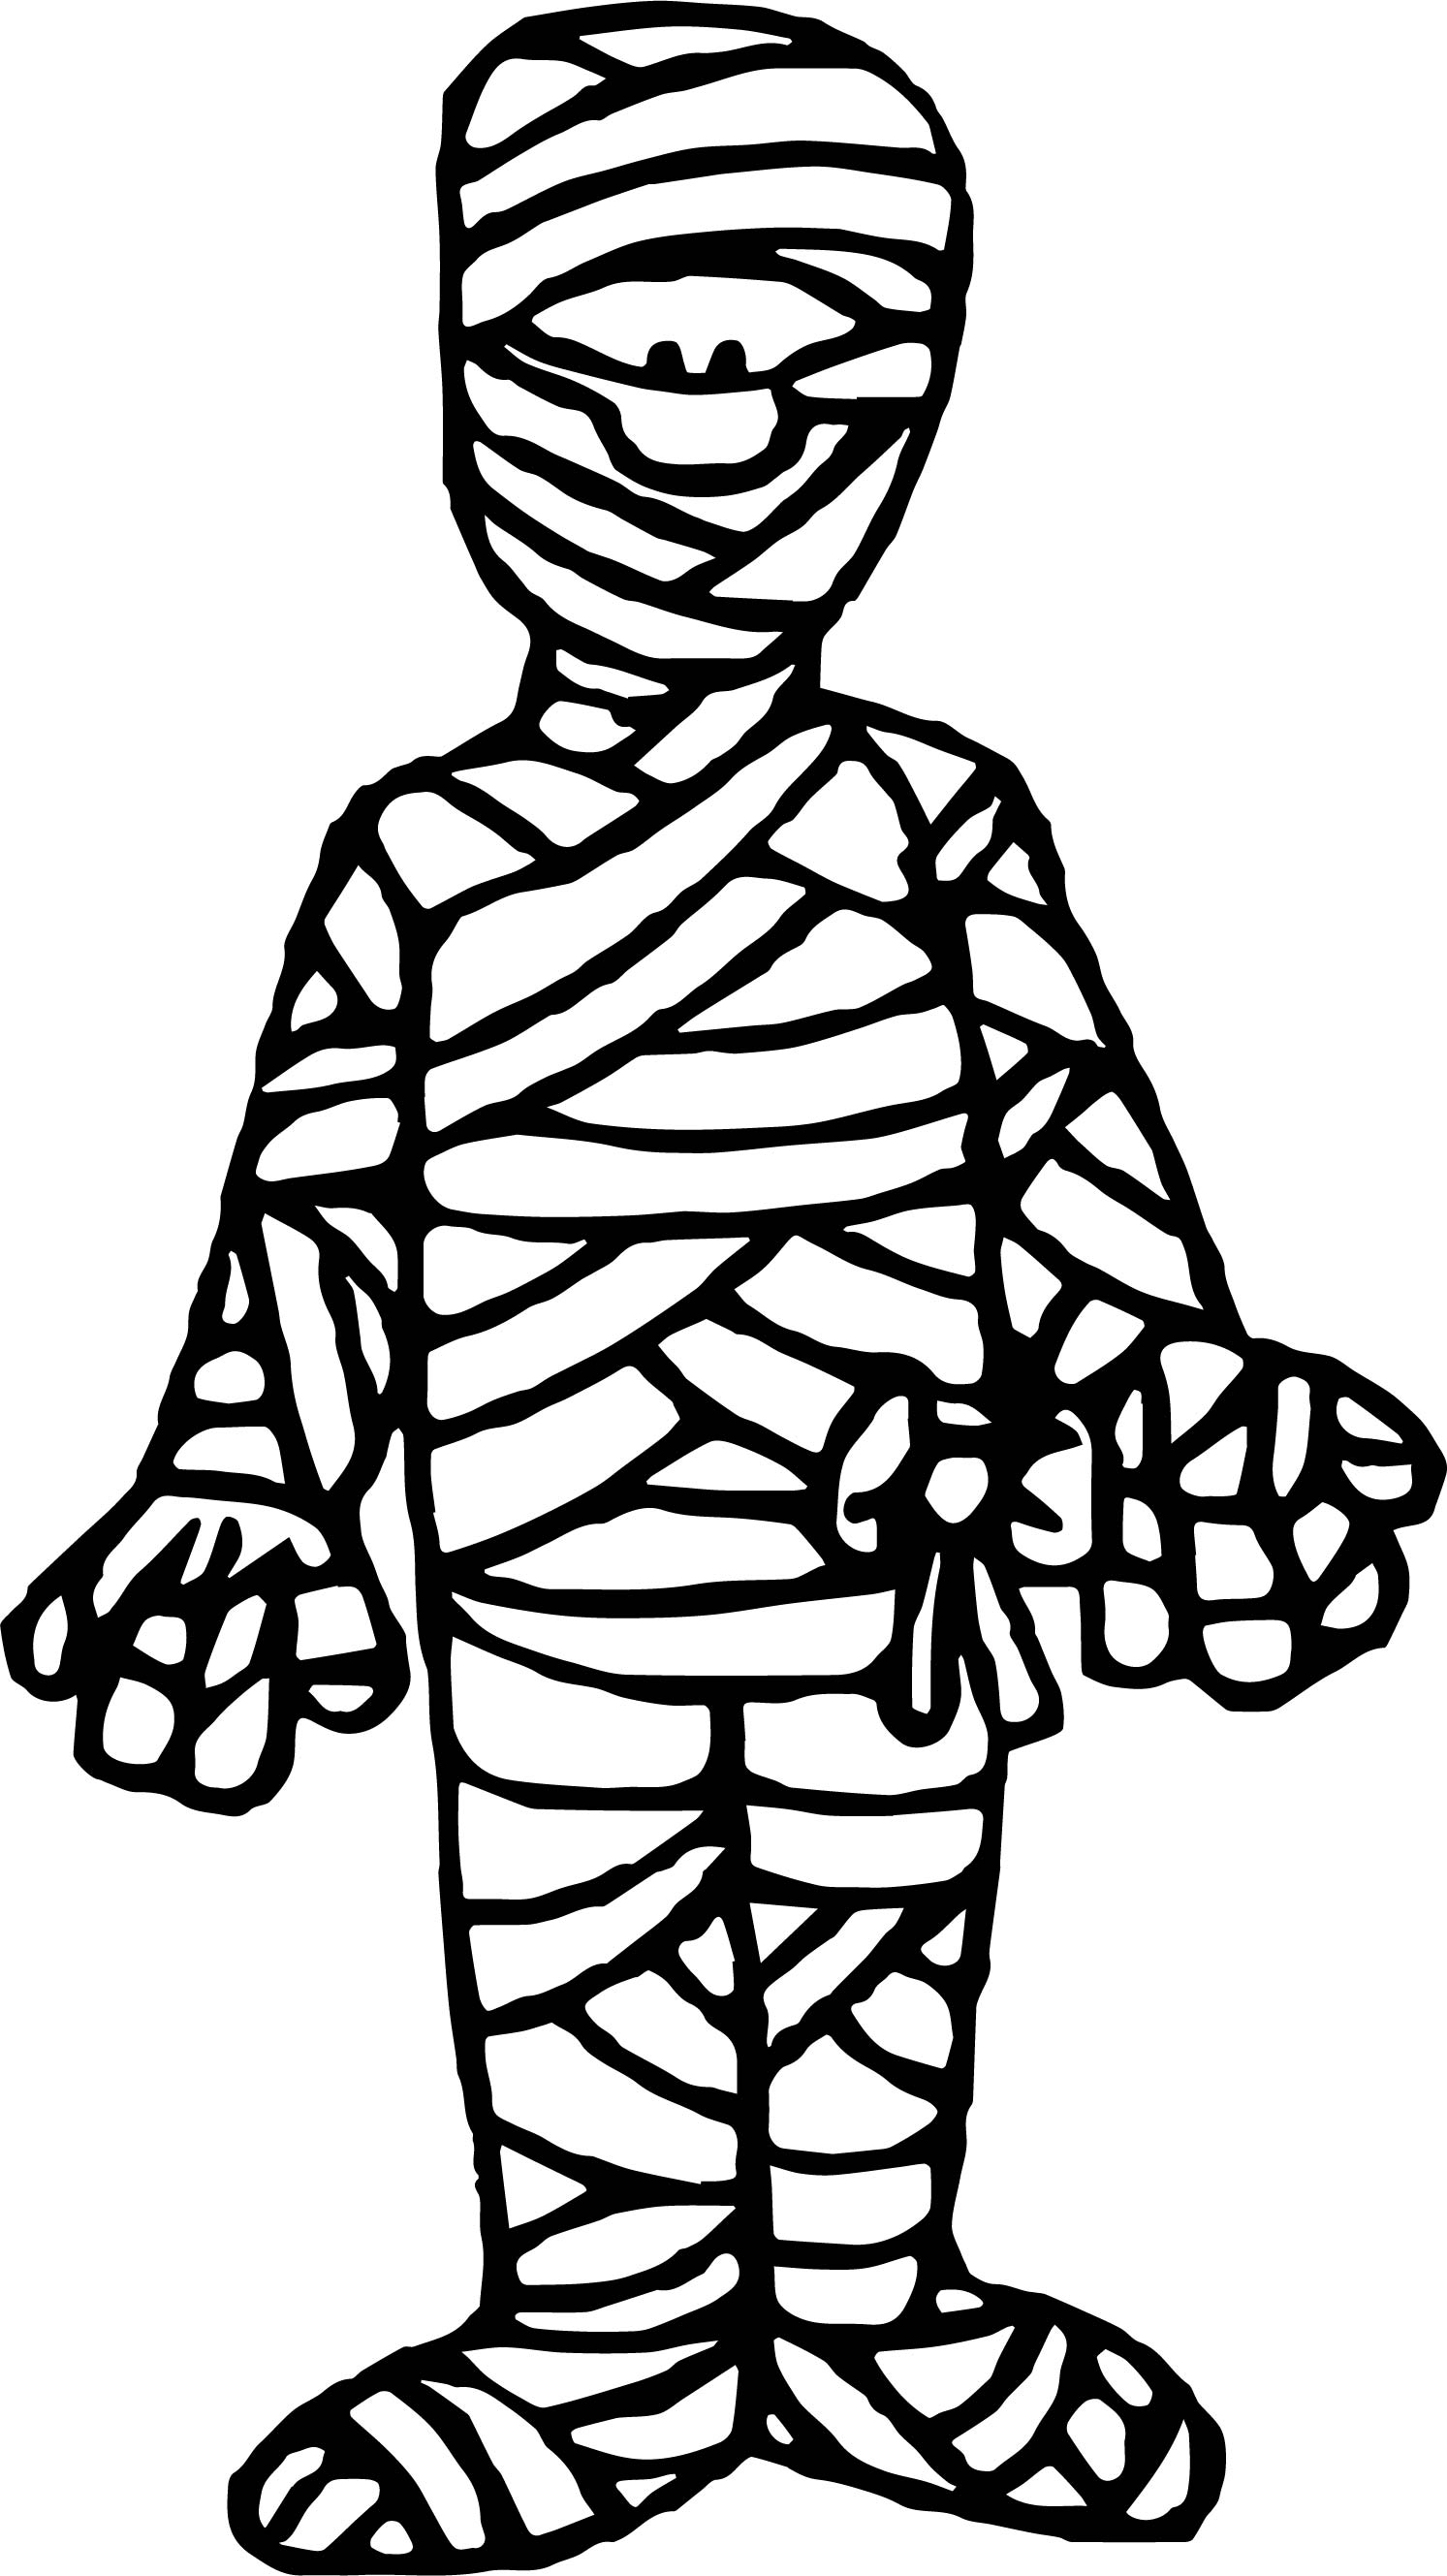 egyptian mummy coloring pages - ancient egypt mummy coloring page